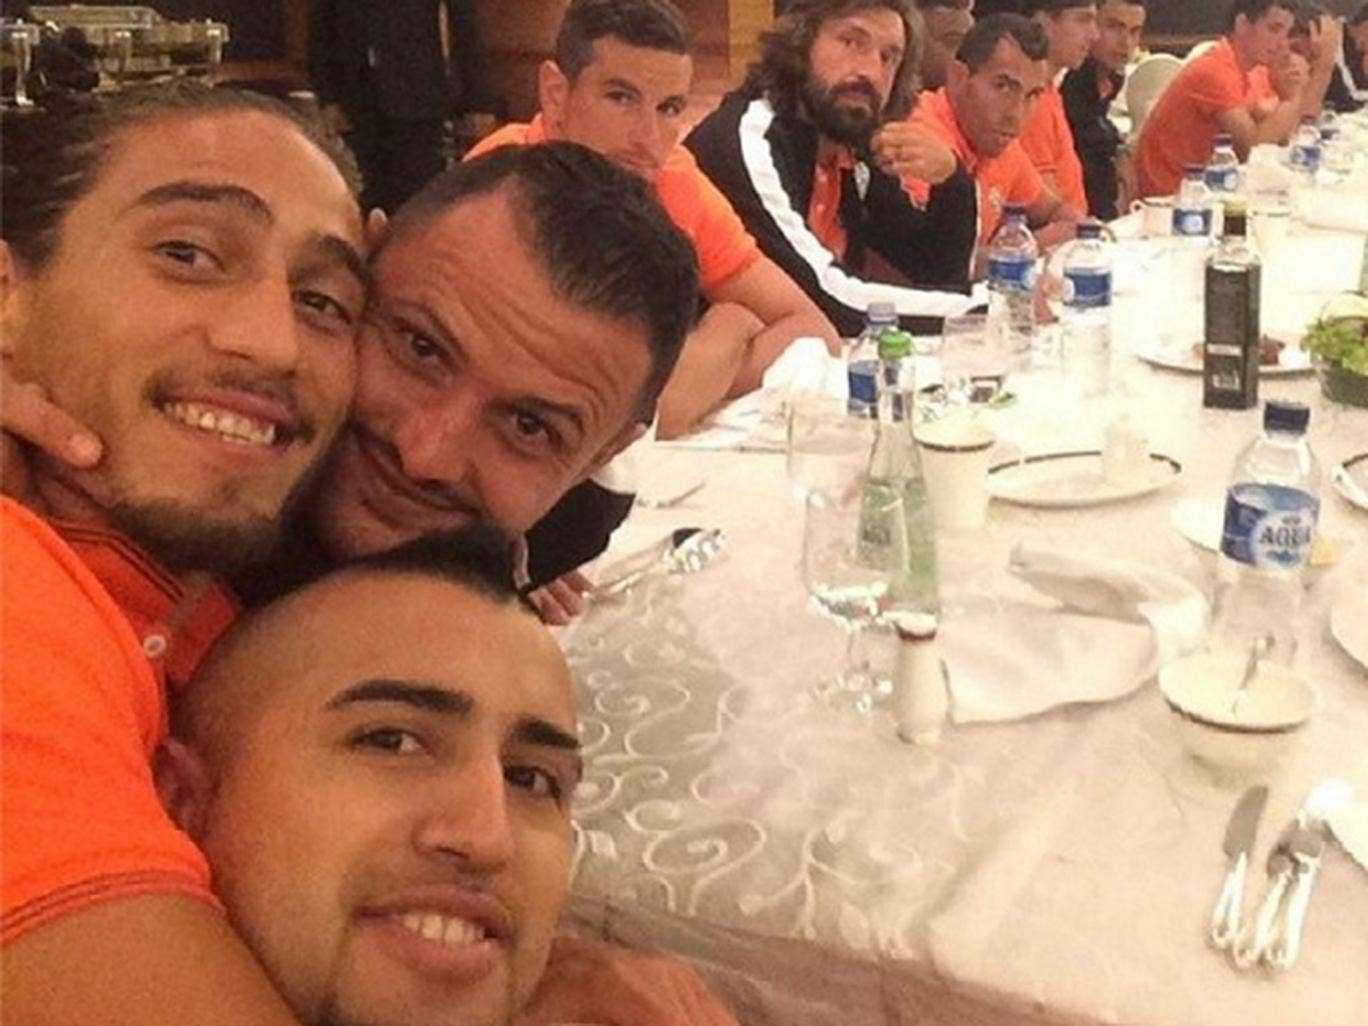 Arturo Vidal posted this picture on his Instagram account today